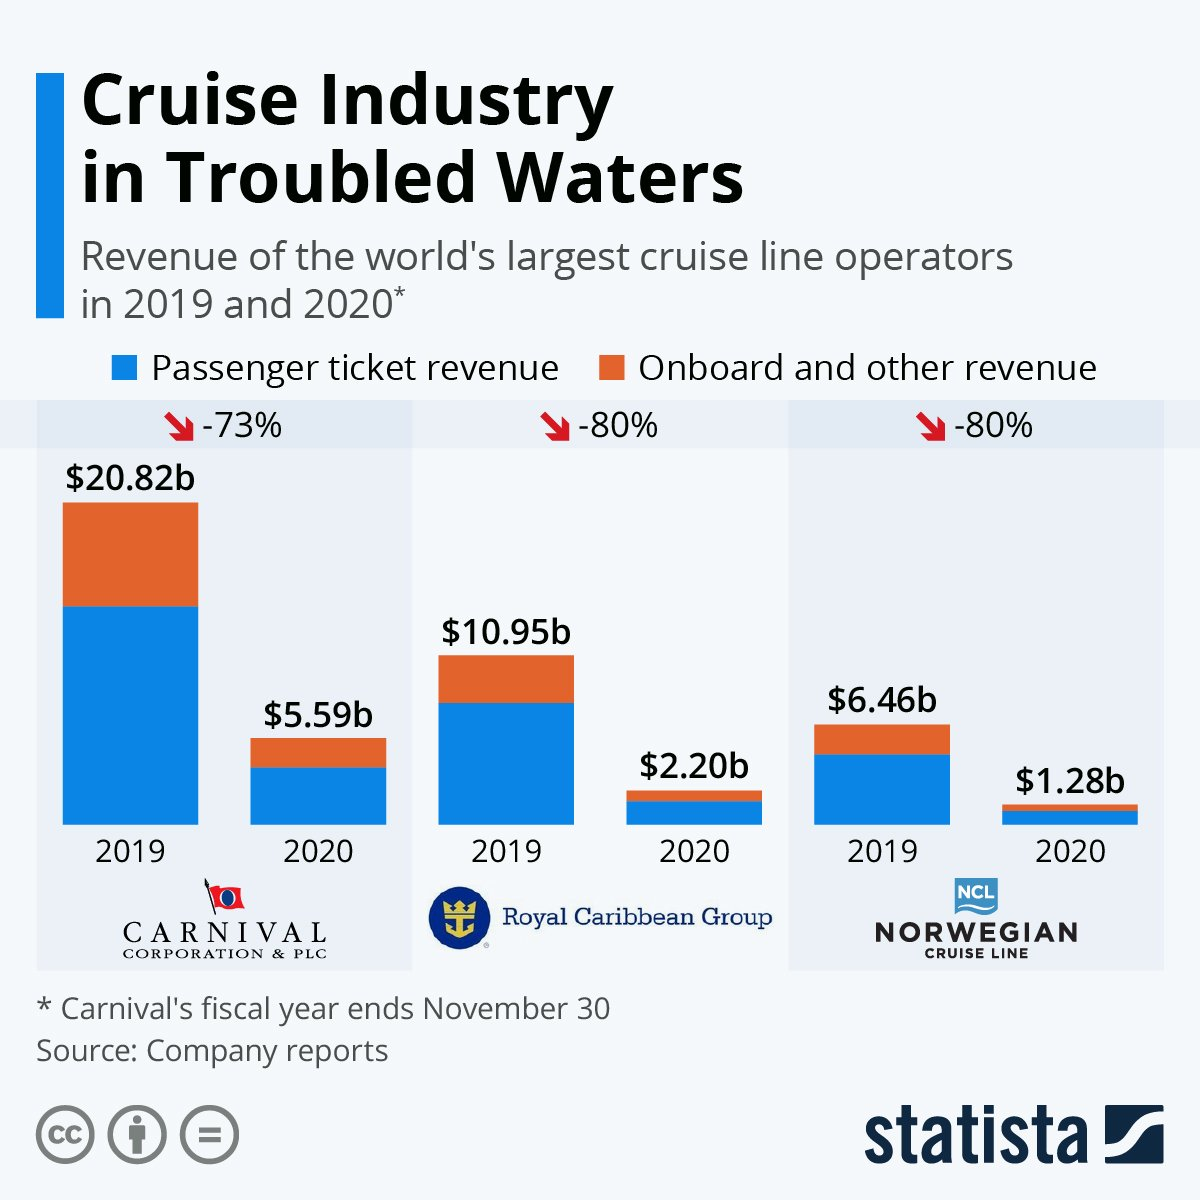 Troubled waters for the cruise industry